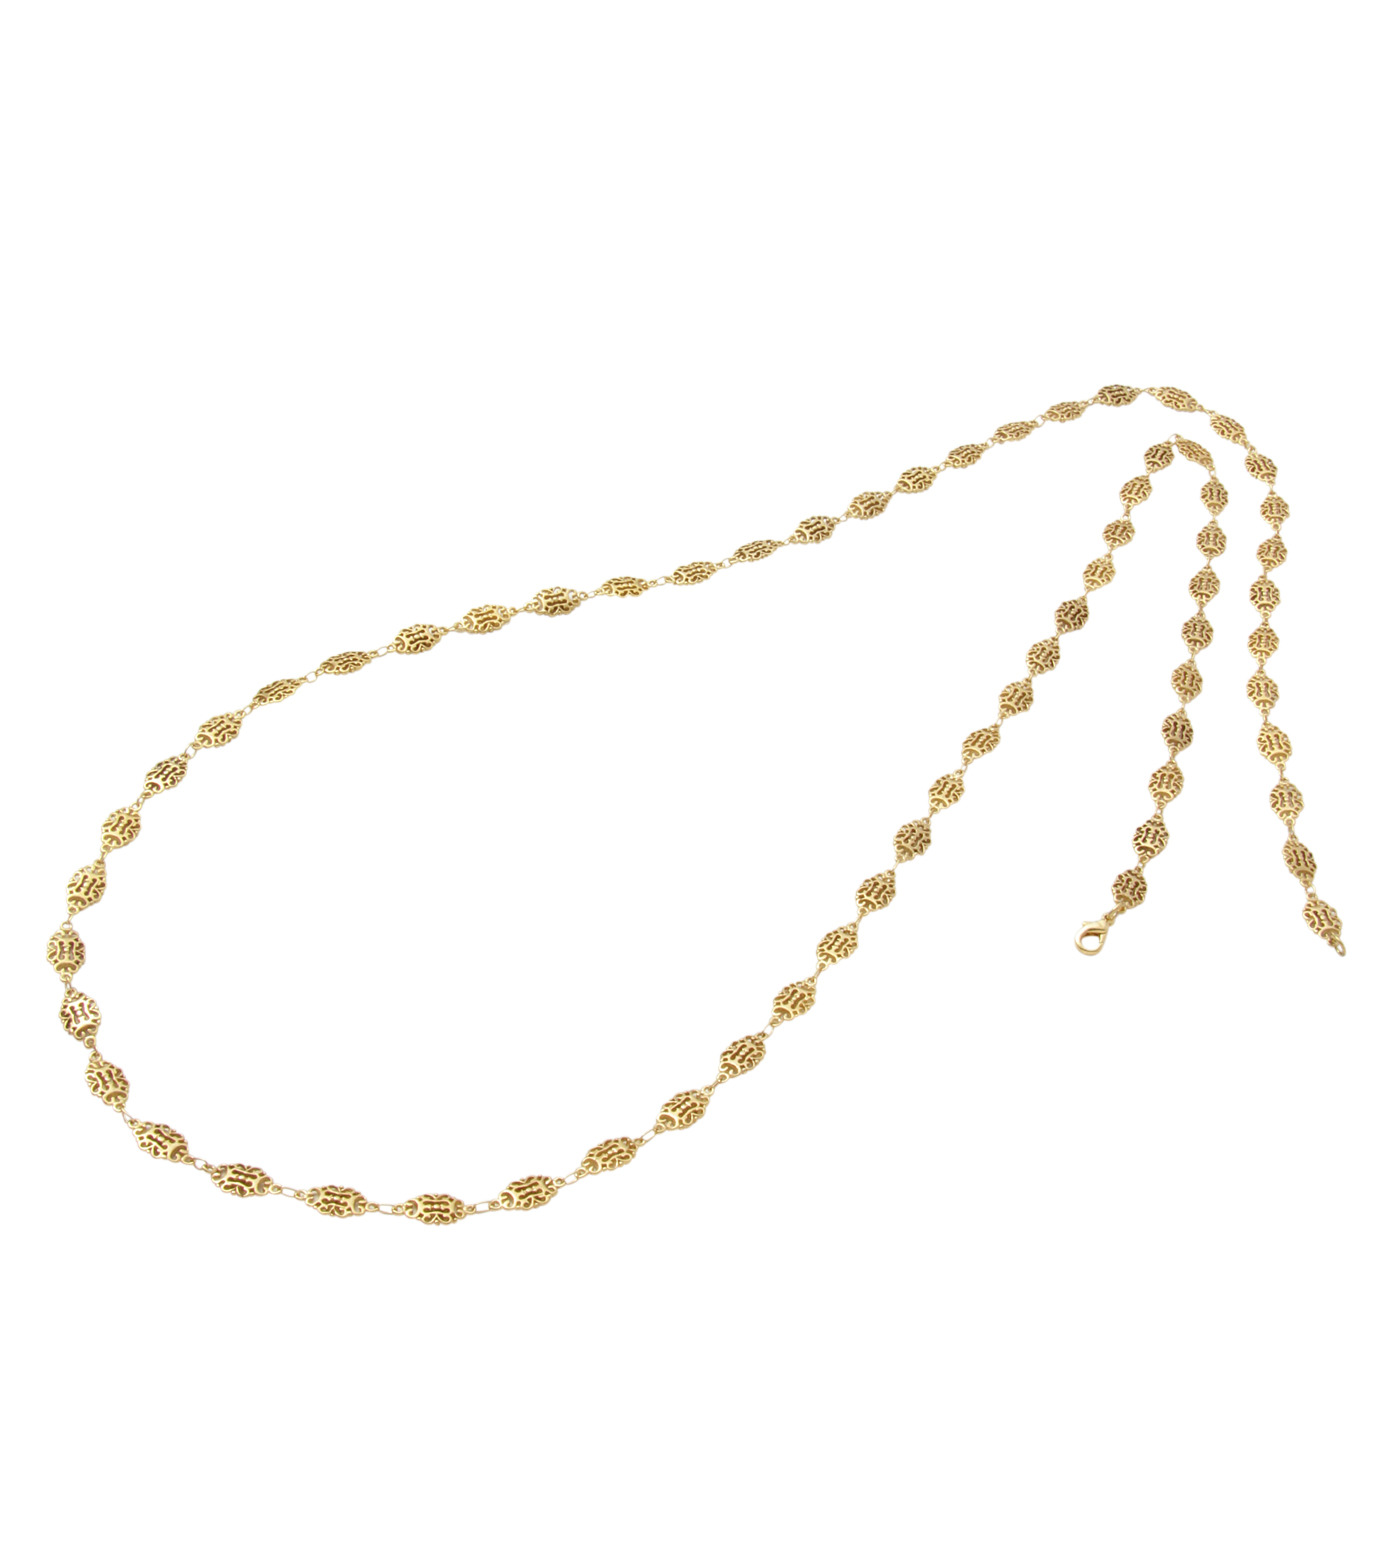 I AM by Ileana Makri(アイ アム バイ イリーナ マクリ)のAntoinette Single Necklace-GOLD(ネックレス/necklace)-O848-61-099-2 拡大詳細画像2